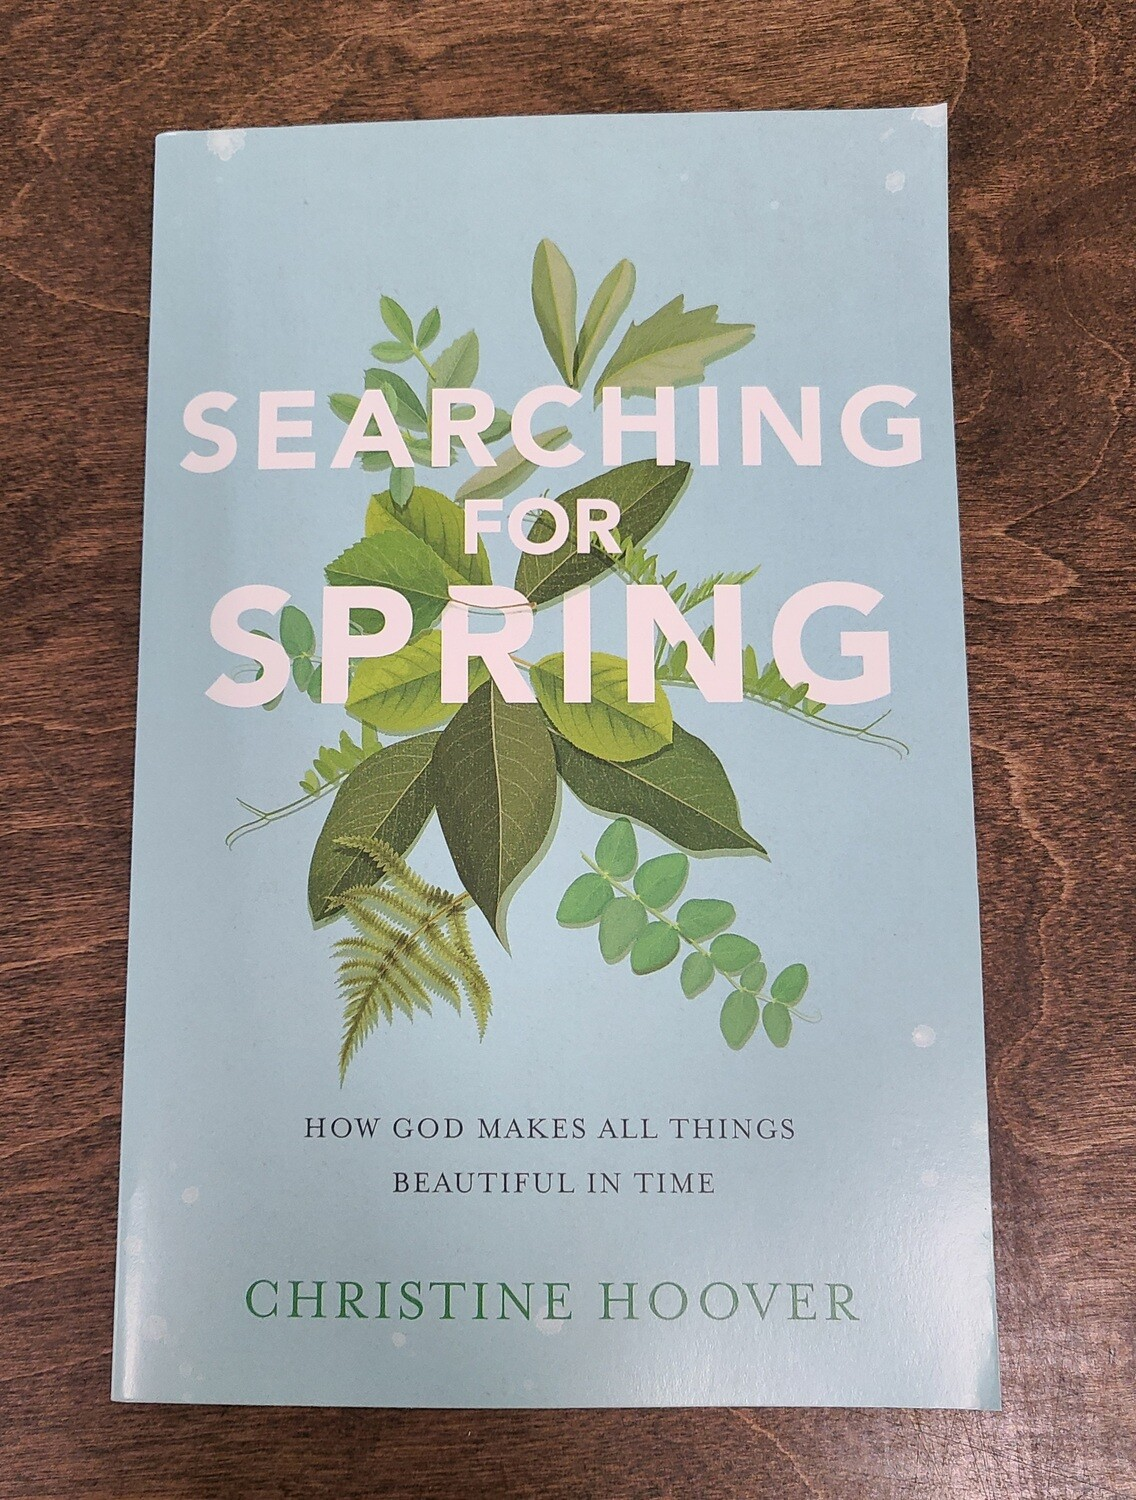 Searching for Spring: How God Makes All Things Beautiful In Time by Christine Hoover